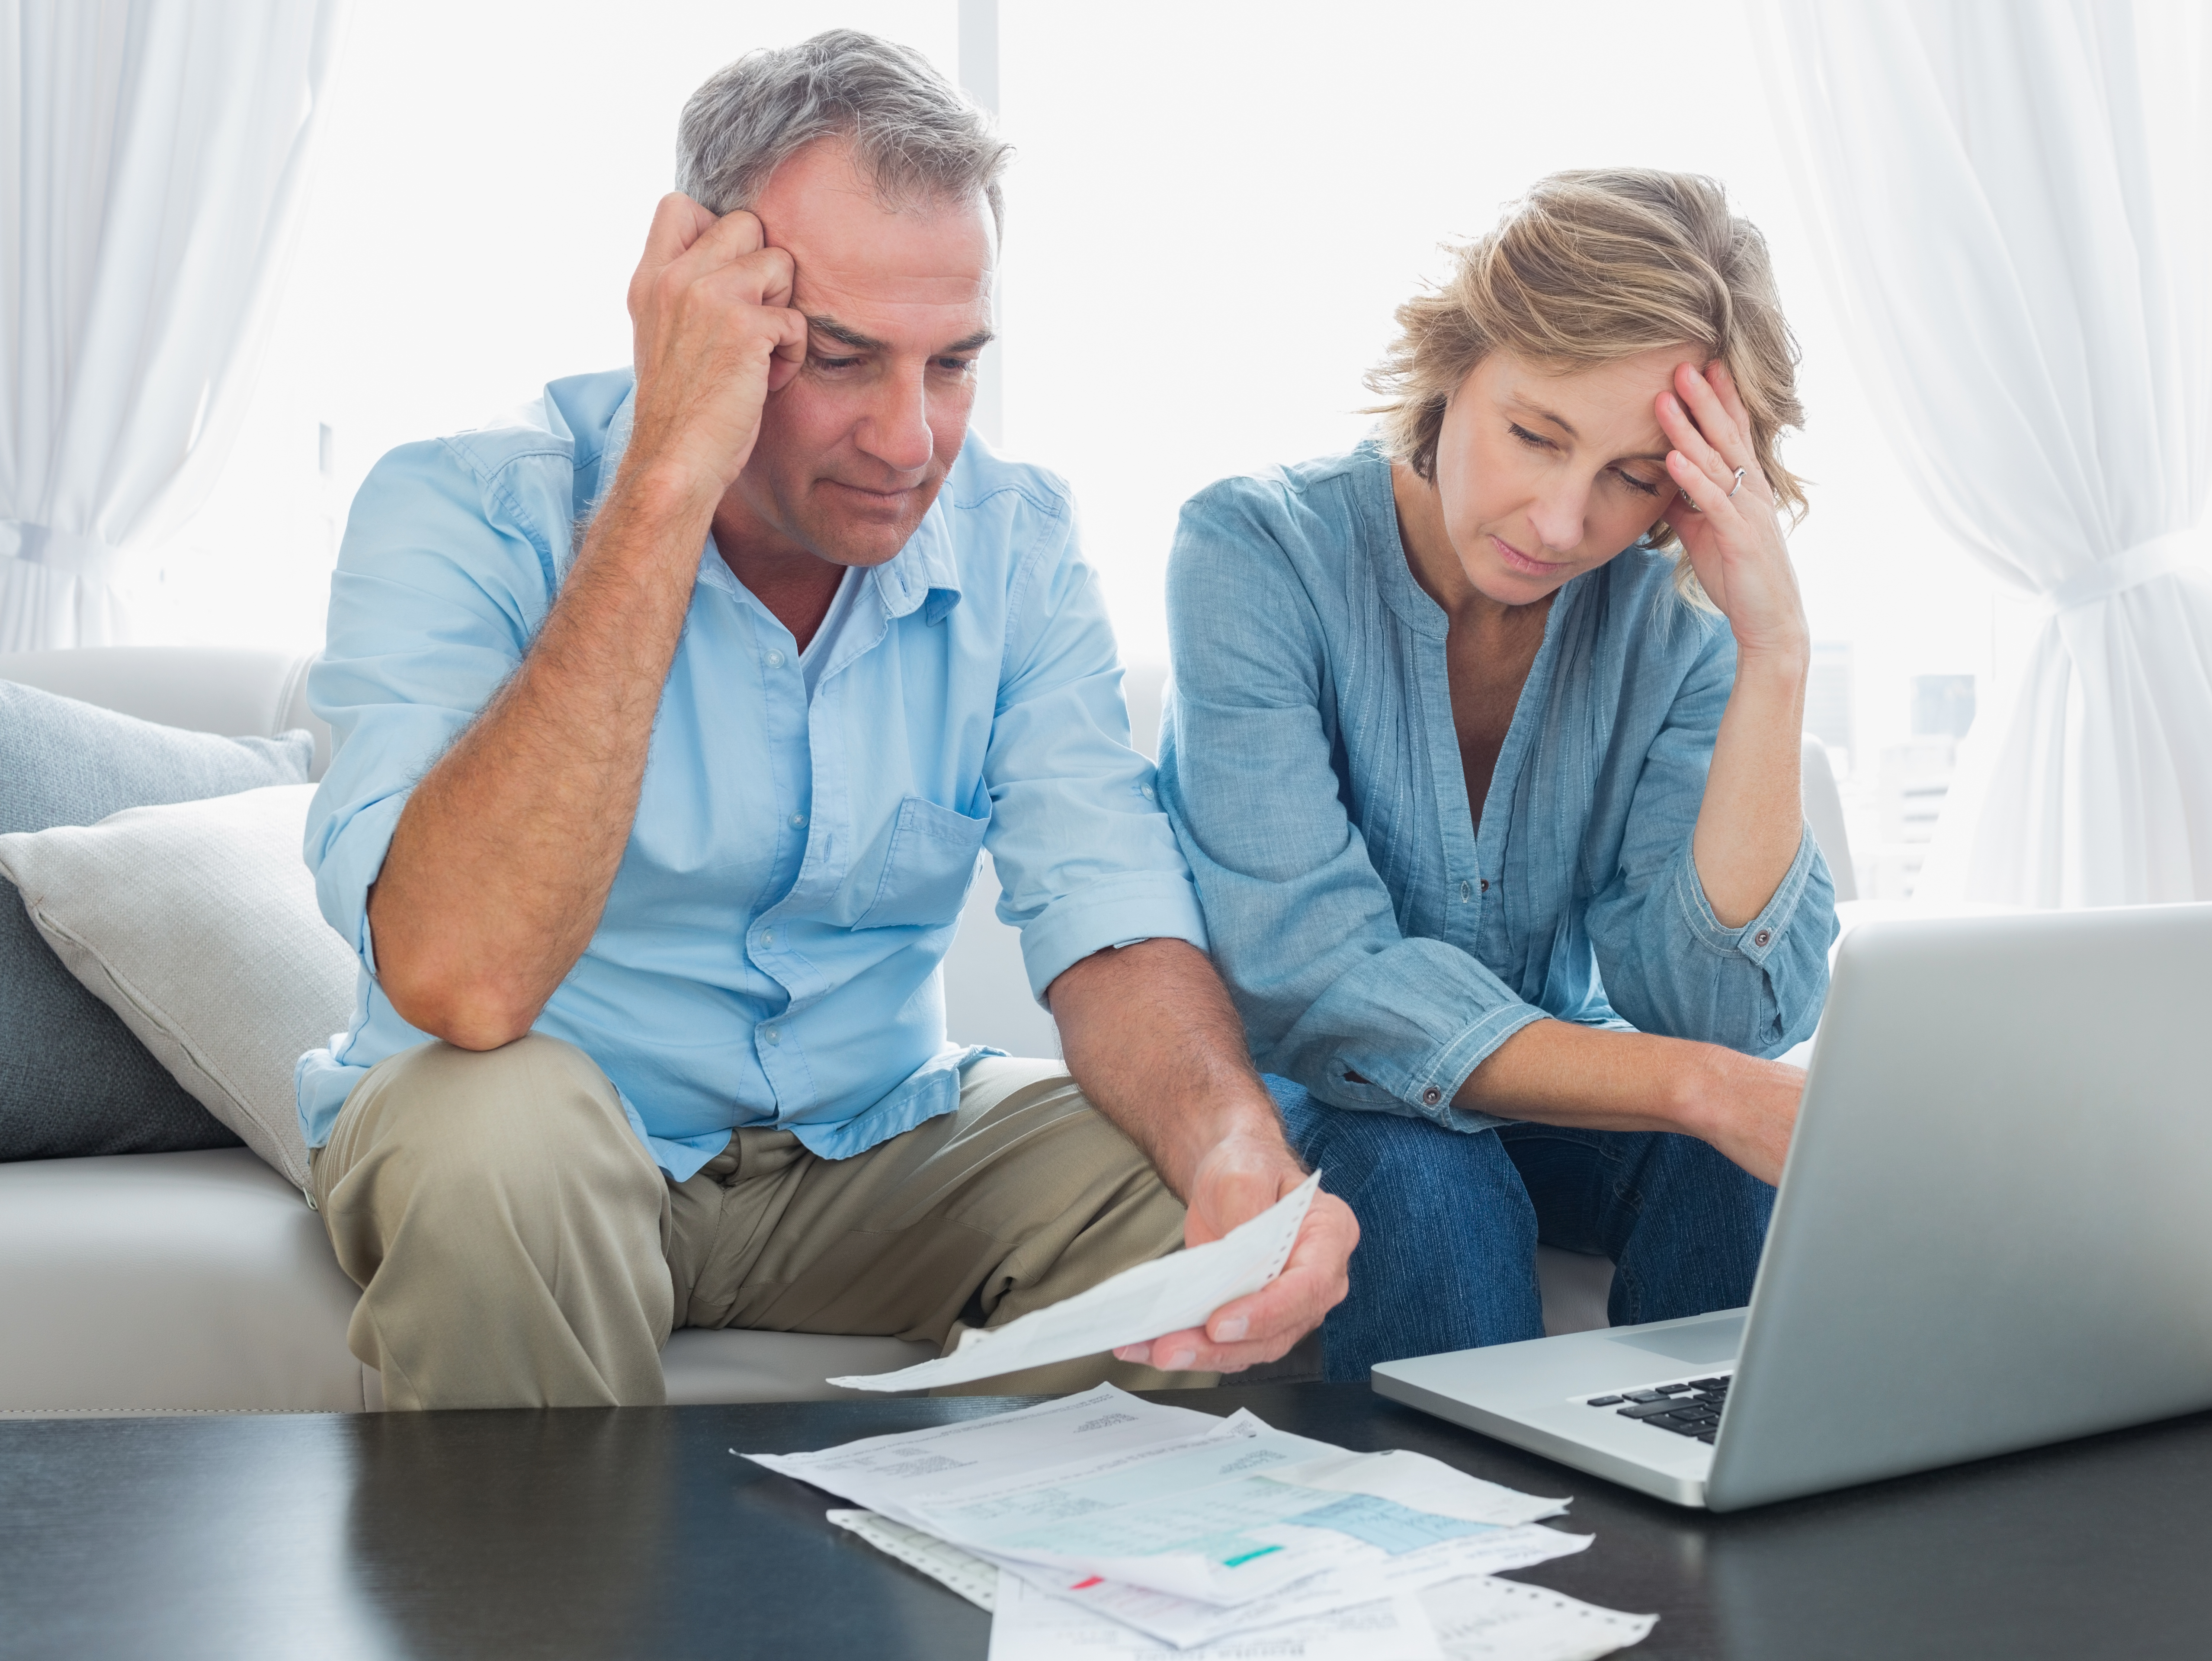 Landlords no more excuses - https://roomslocal.co.uk/blog/landlords-no-more-excuses #more #excuses